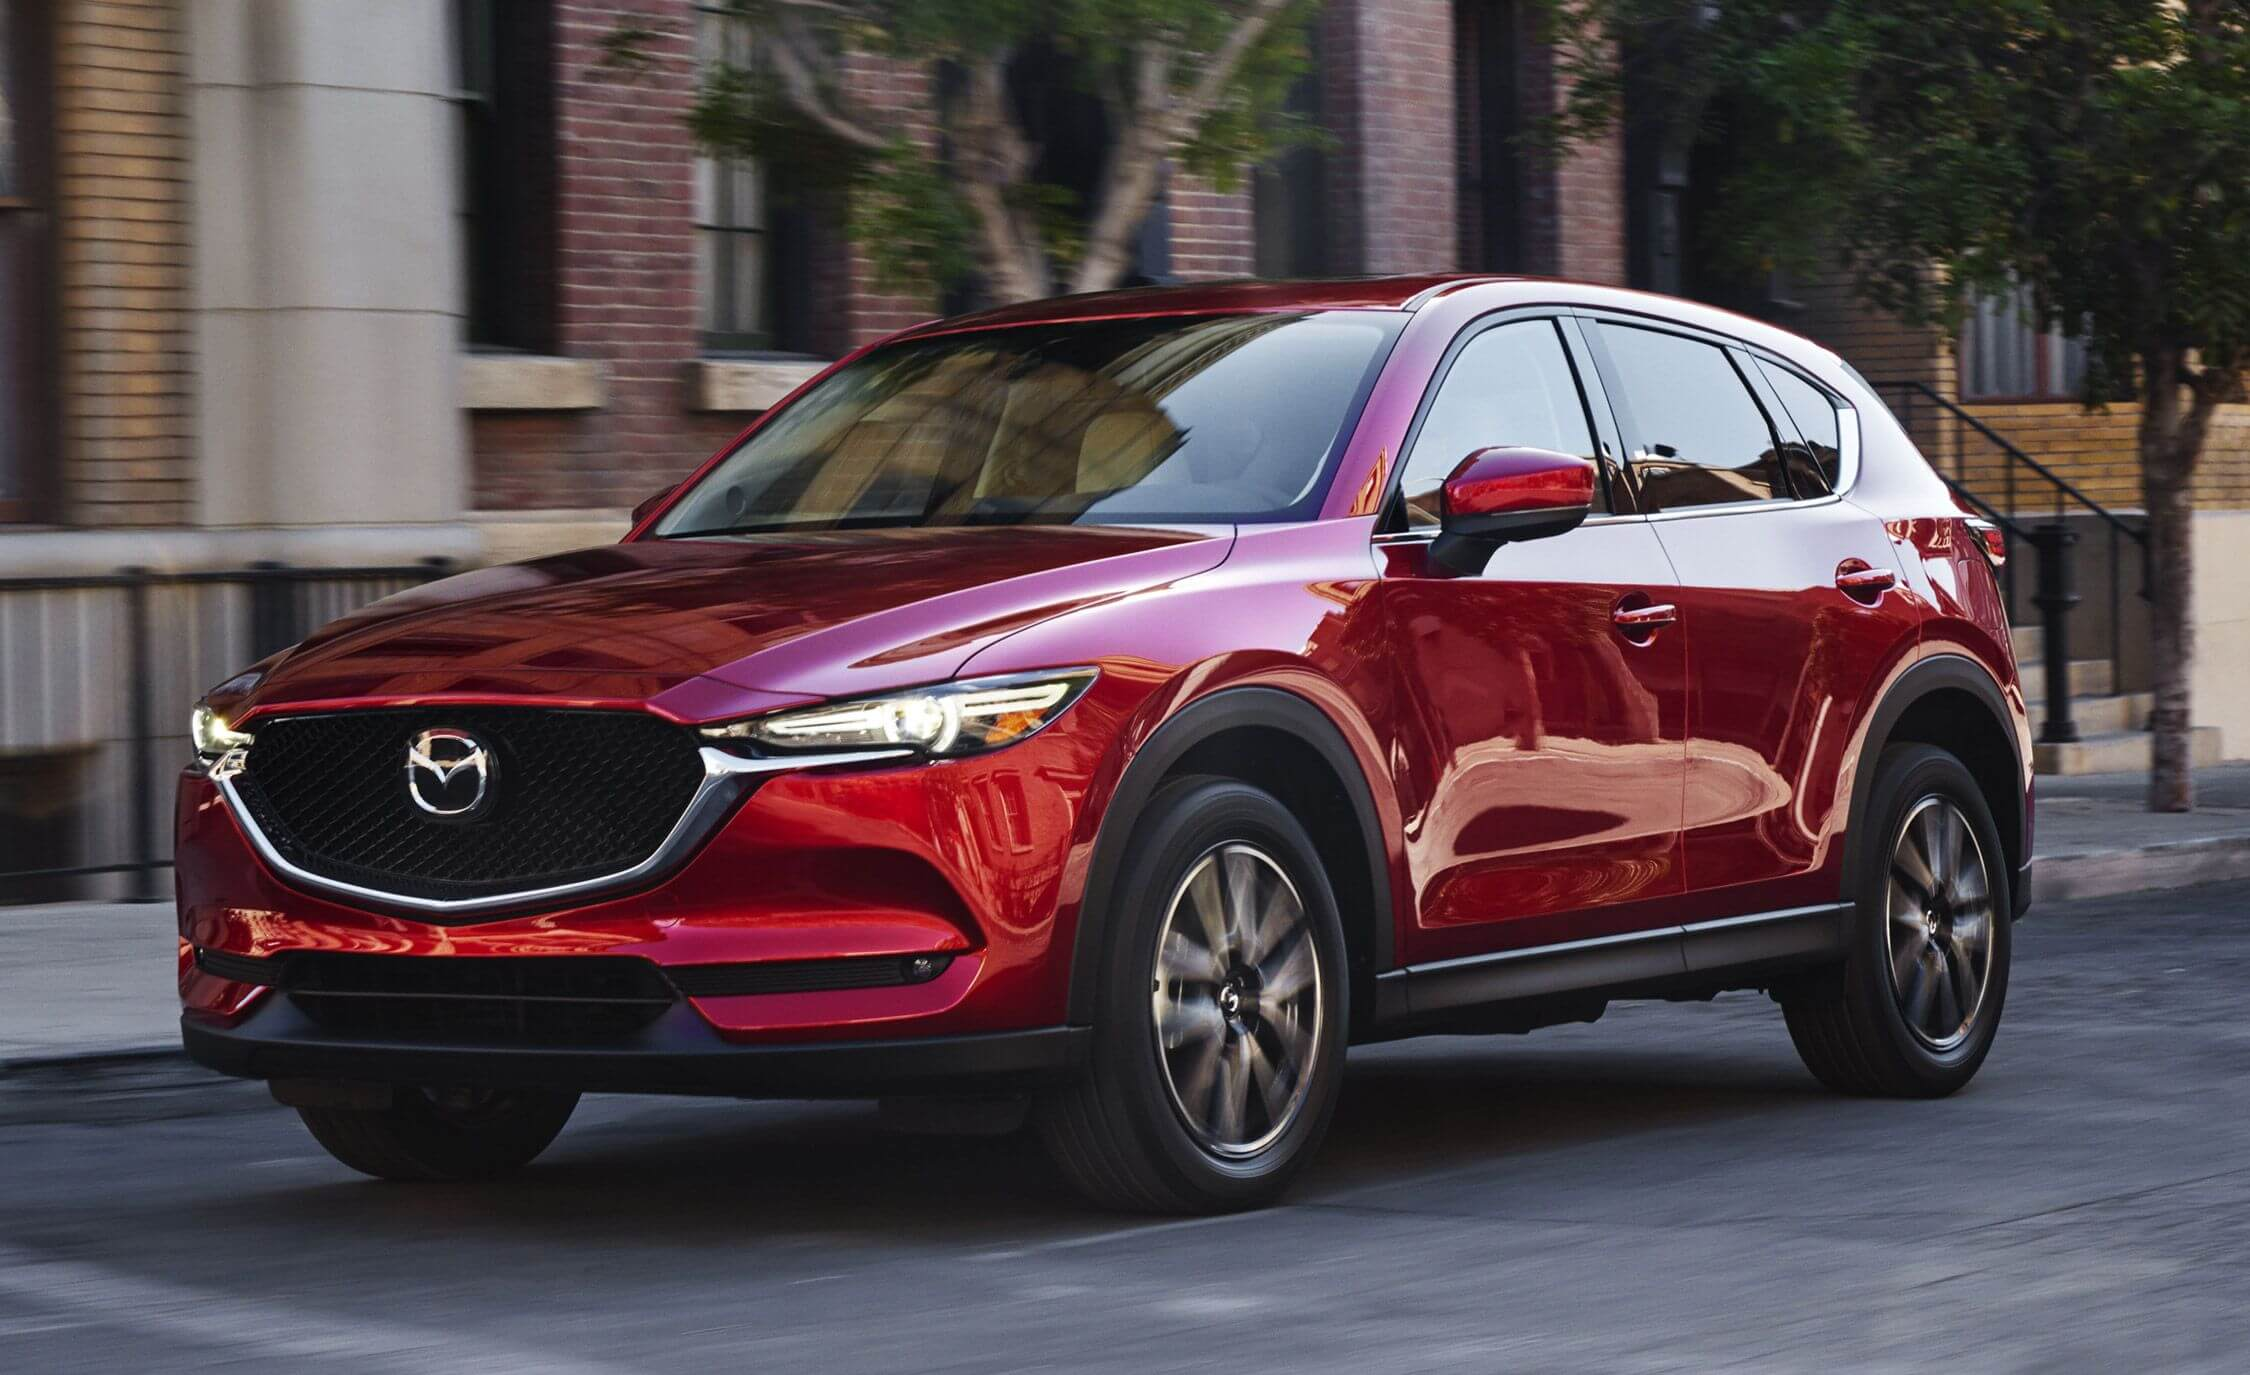 2018-mazda-cx-5-diesel-is-a-car-worth-waiting-for-feature-car-and-driver-photo-677161-s-original